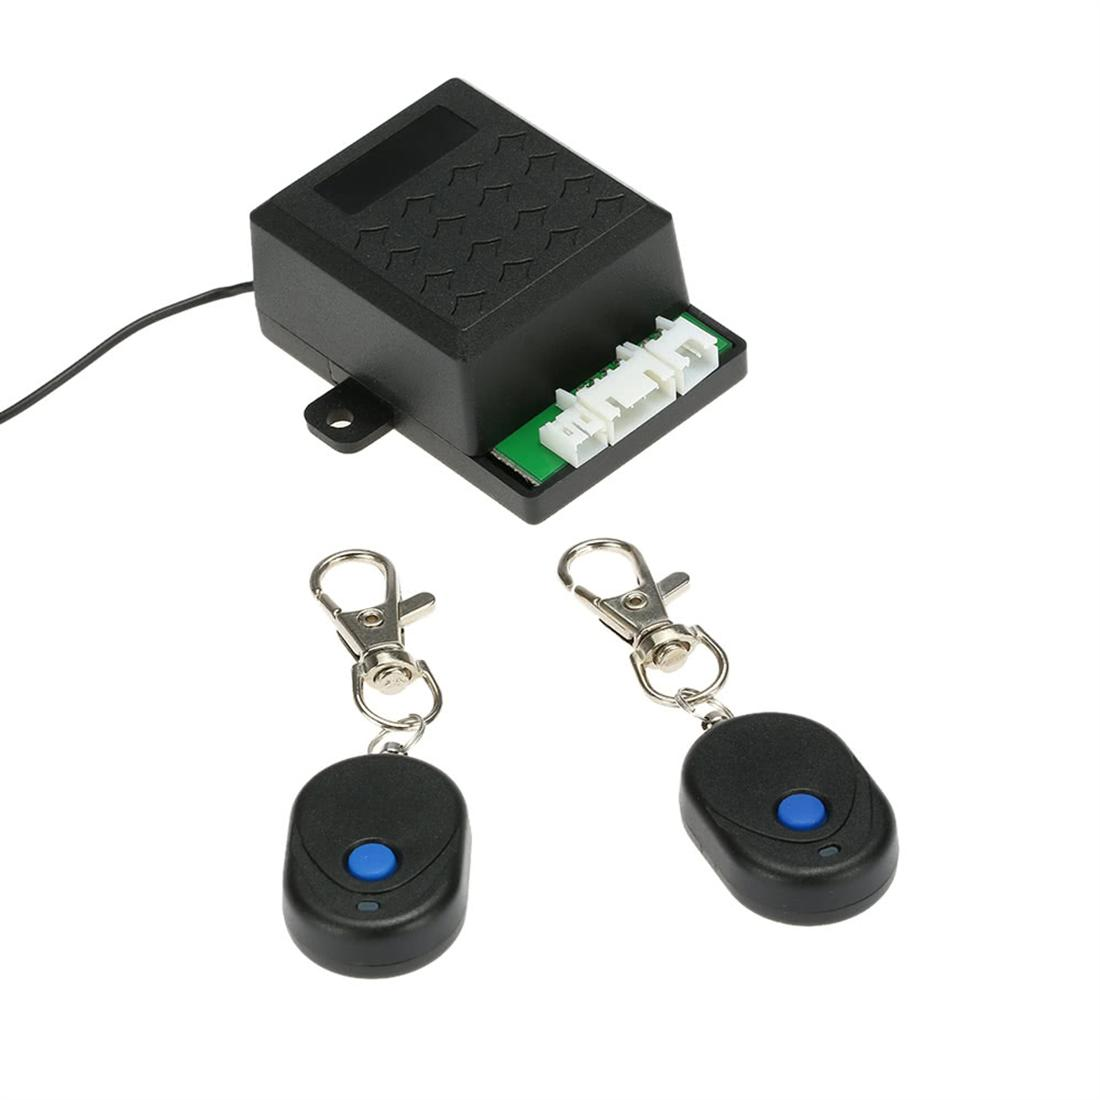 Universal Car Immobilizer Anti Theft (end 4/16/2021 4:23 AM)